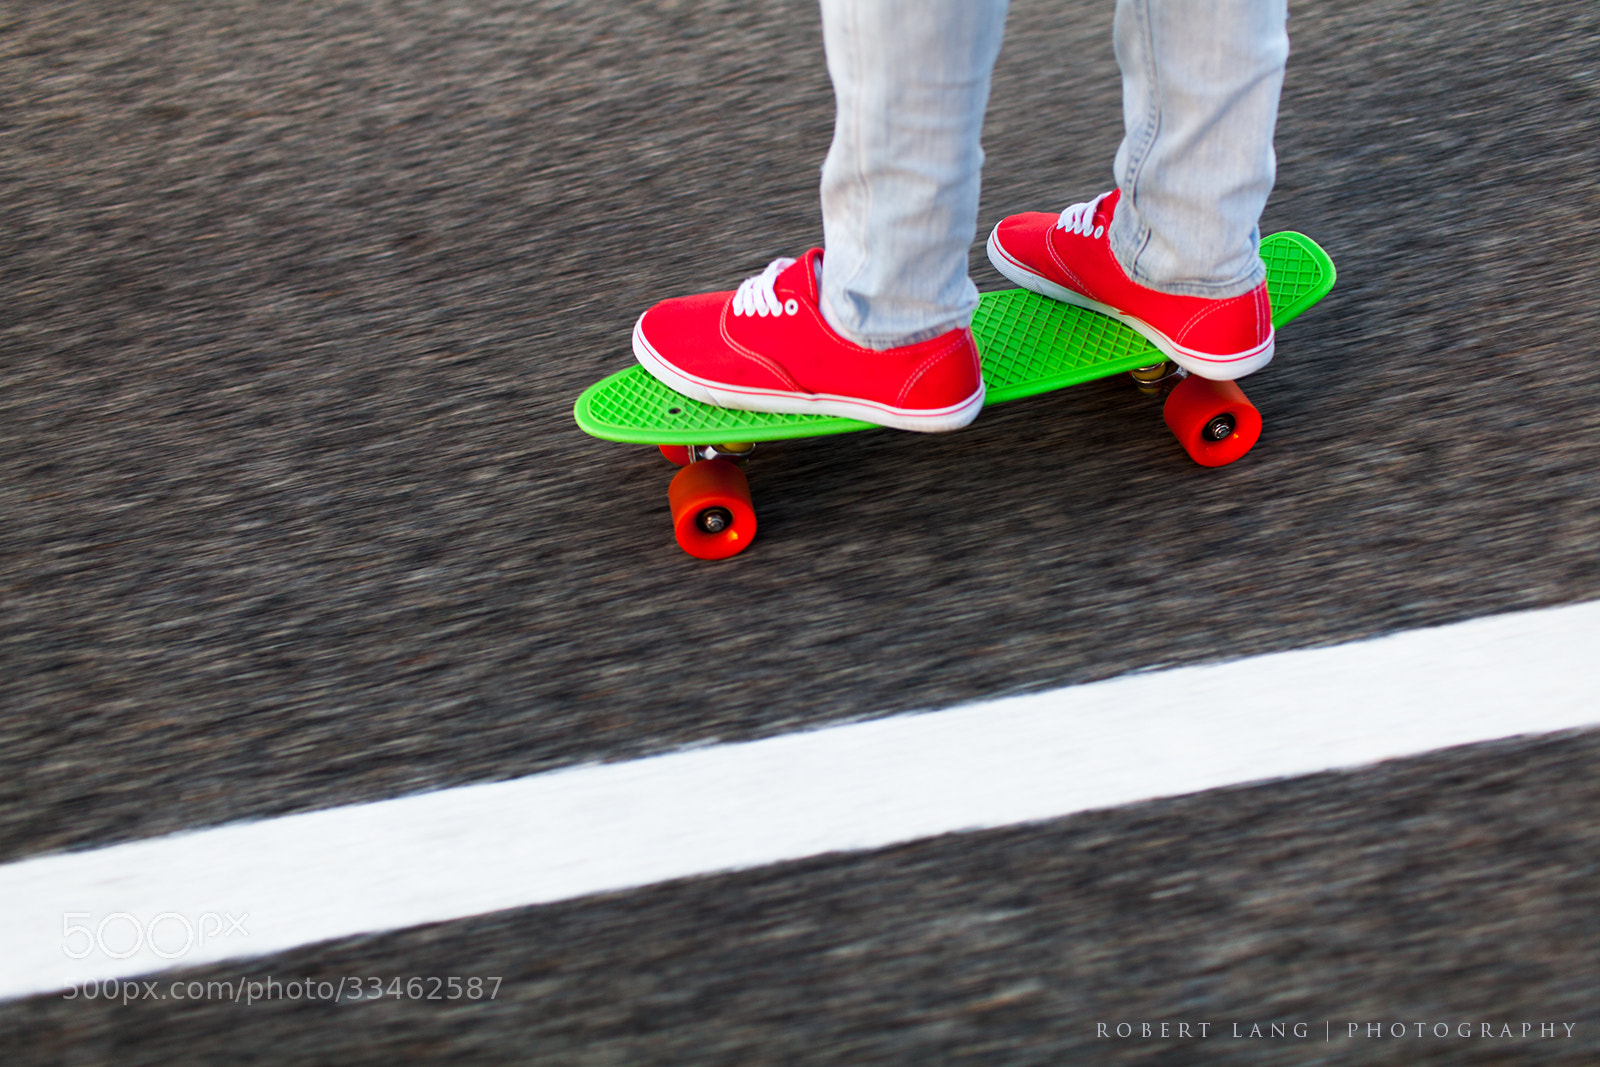 Photograph Youth skateboarding by Robert Lang on 500px